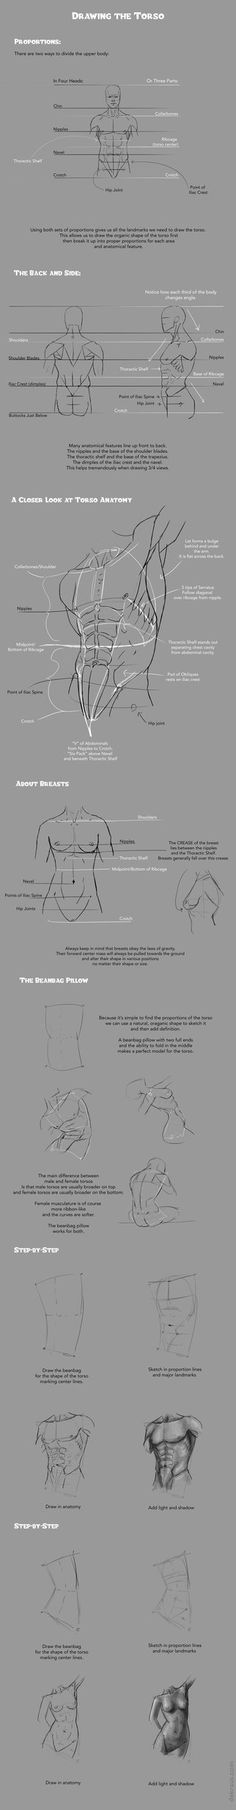 Female anatomy Reference by DeviantTear on DeviantArt